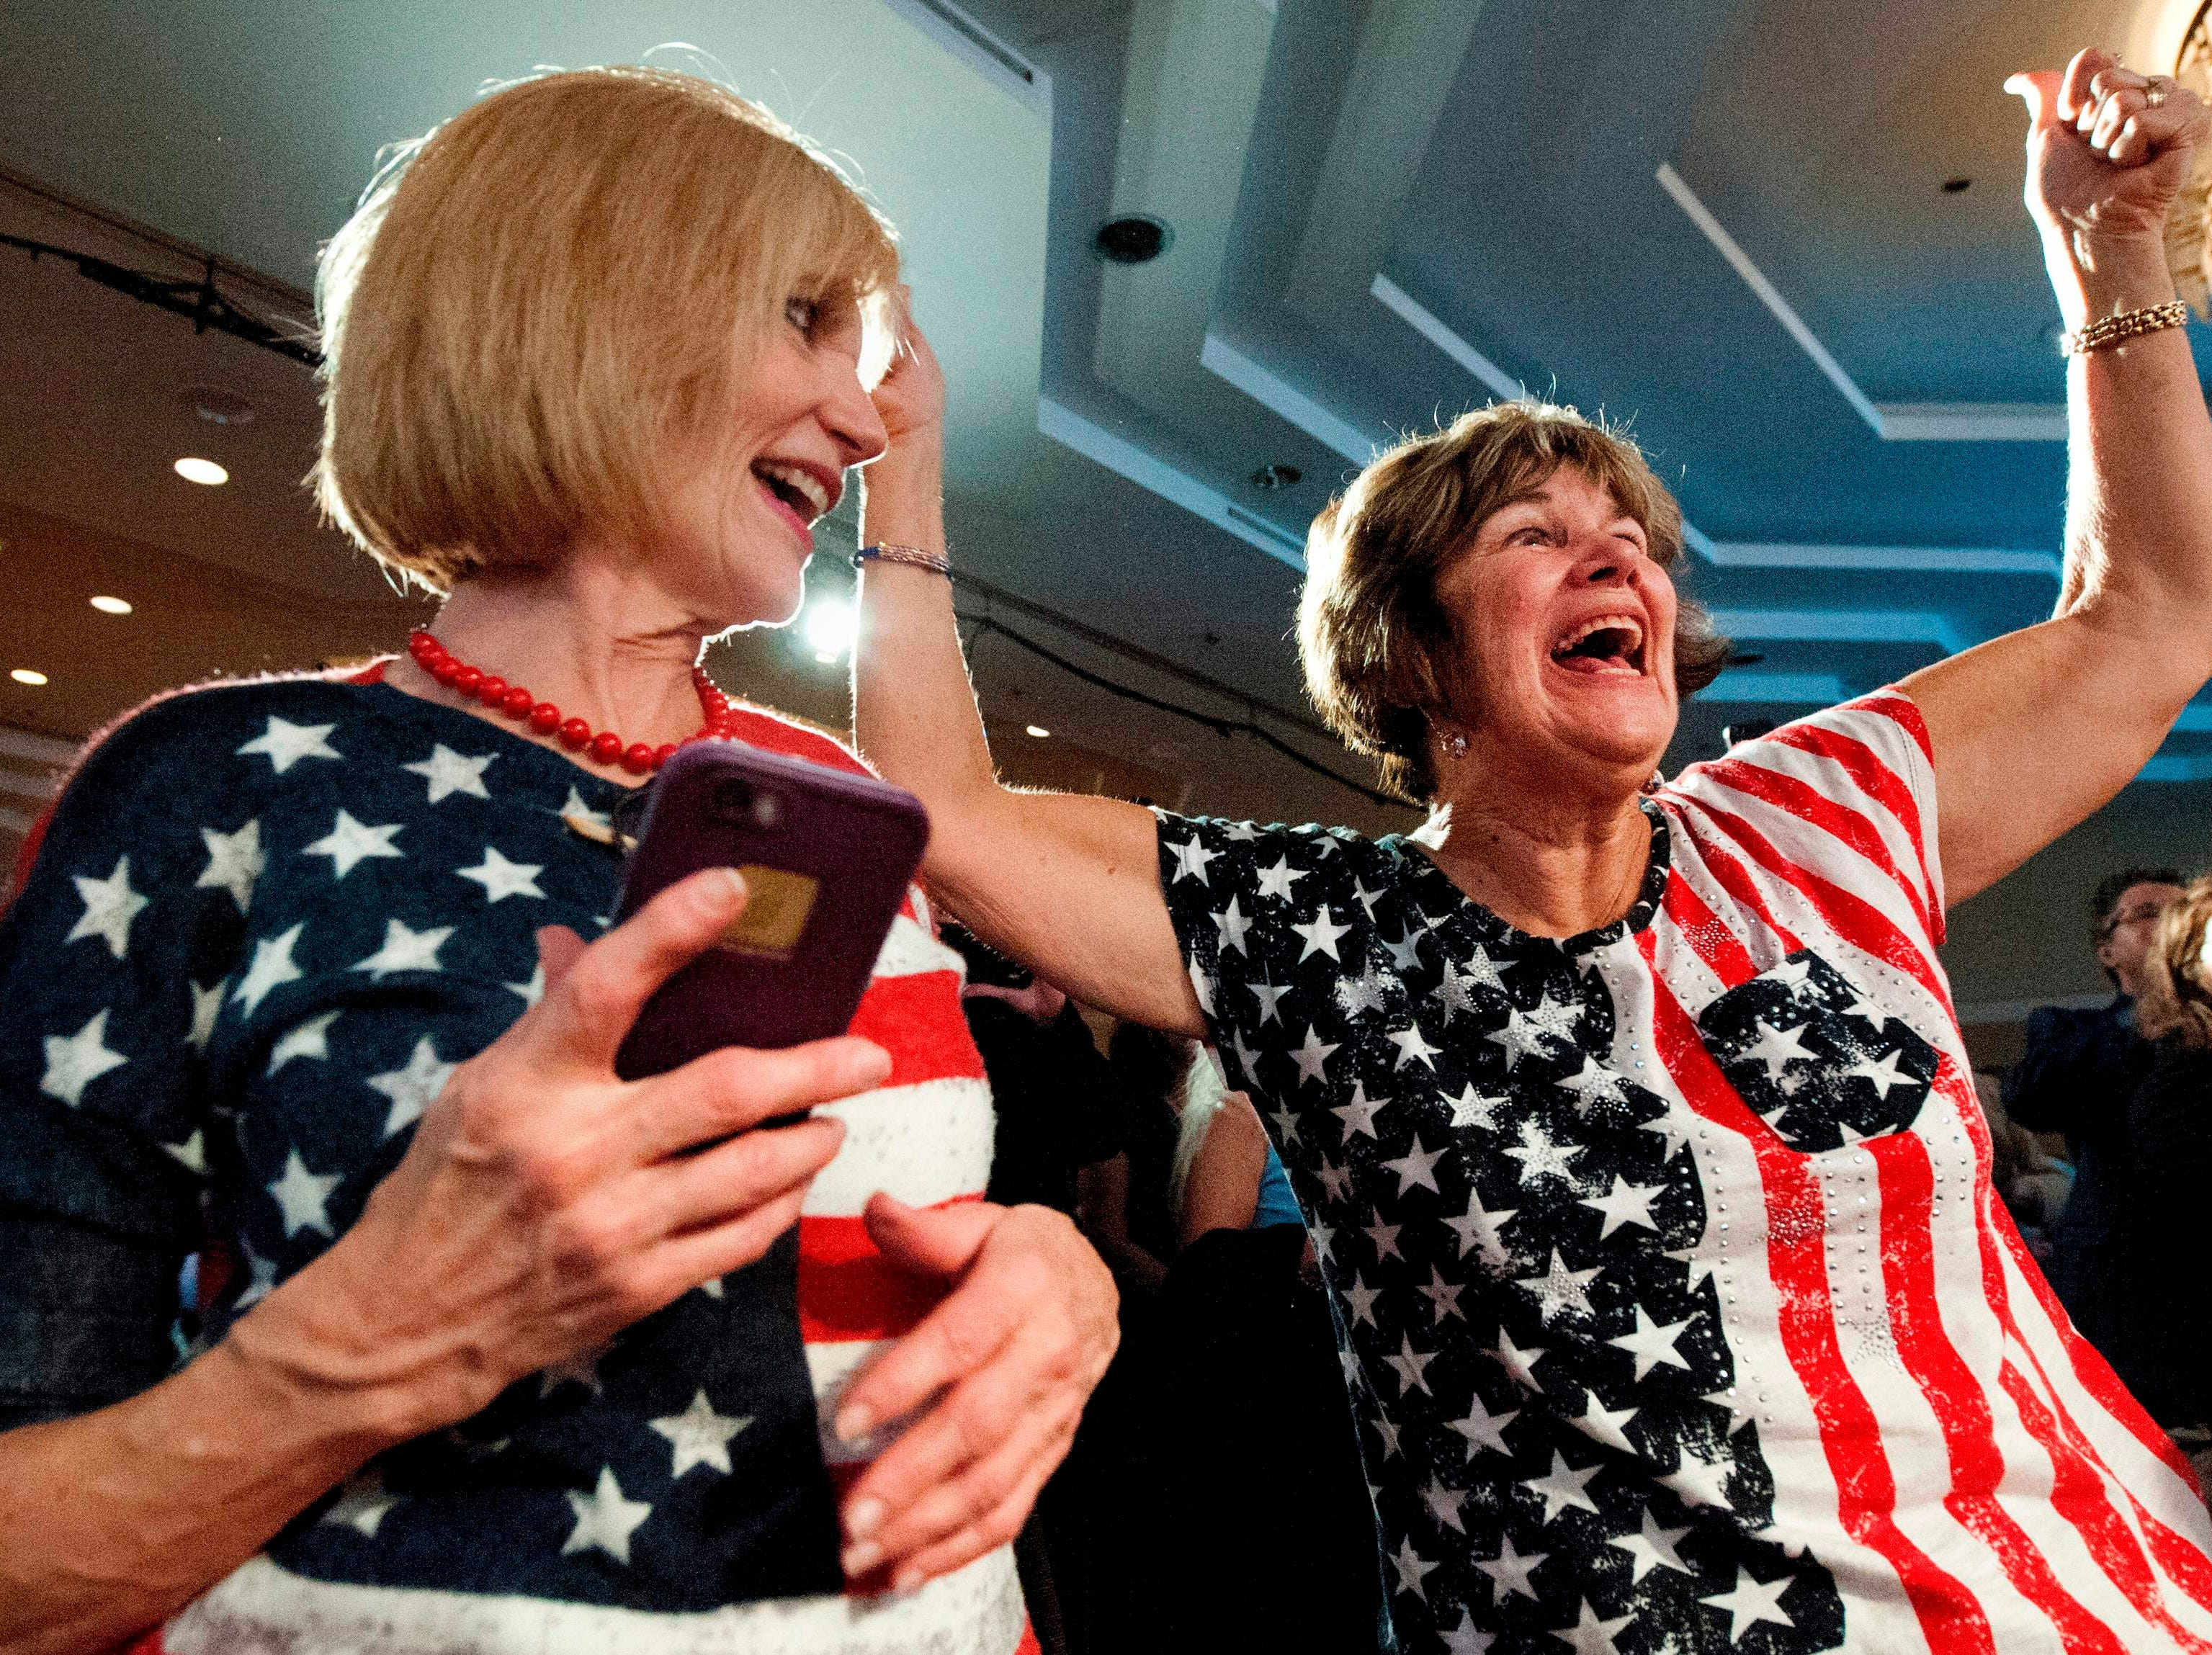 Karen Magnuson (L) and Karen Shaw celebrate after the announcement of the victory of Jason Crow, Democratic candidate for Colorado's 6th congressional District, during the Colorado Democrats watch party in Denver, Colorado, on Nov. 6, 2018.